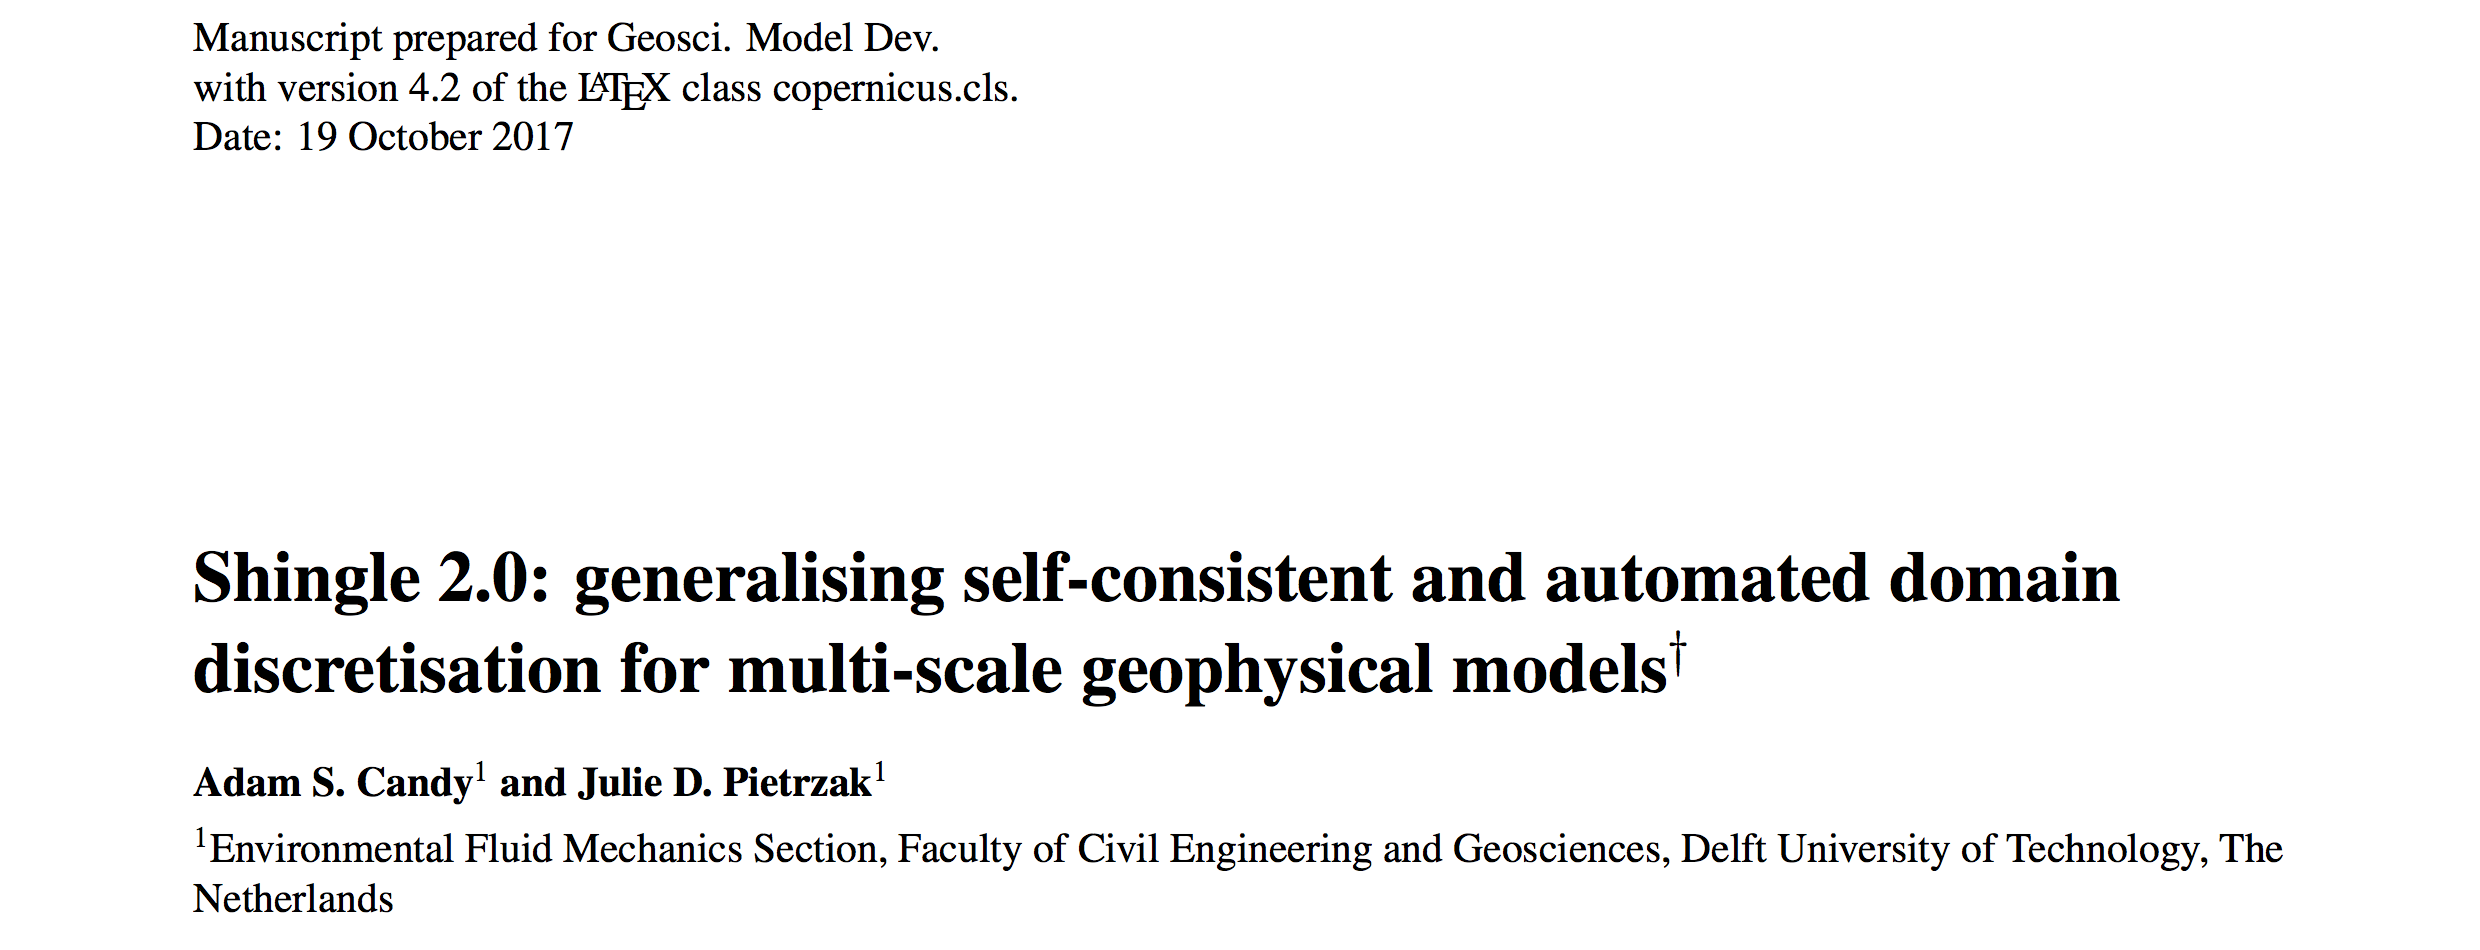 Published paper: Shingle 2.0: generalising self-consistent and automated domain discretisation for multi-scale geophysical models